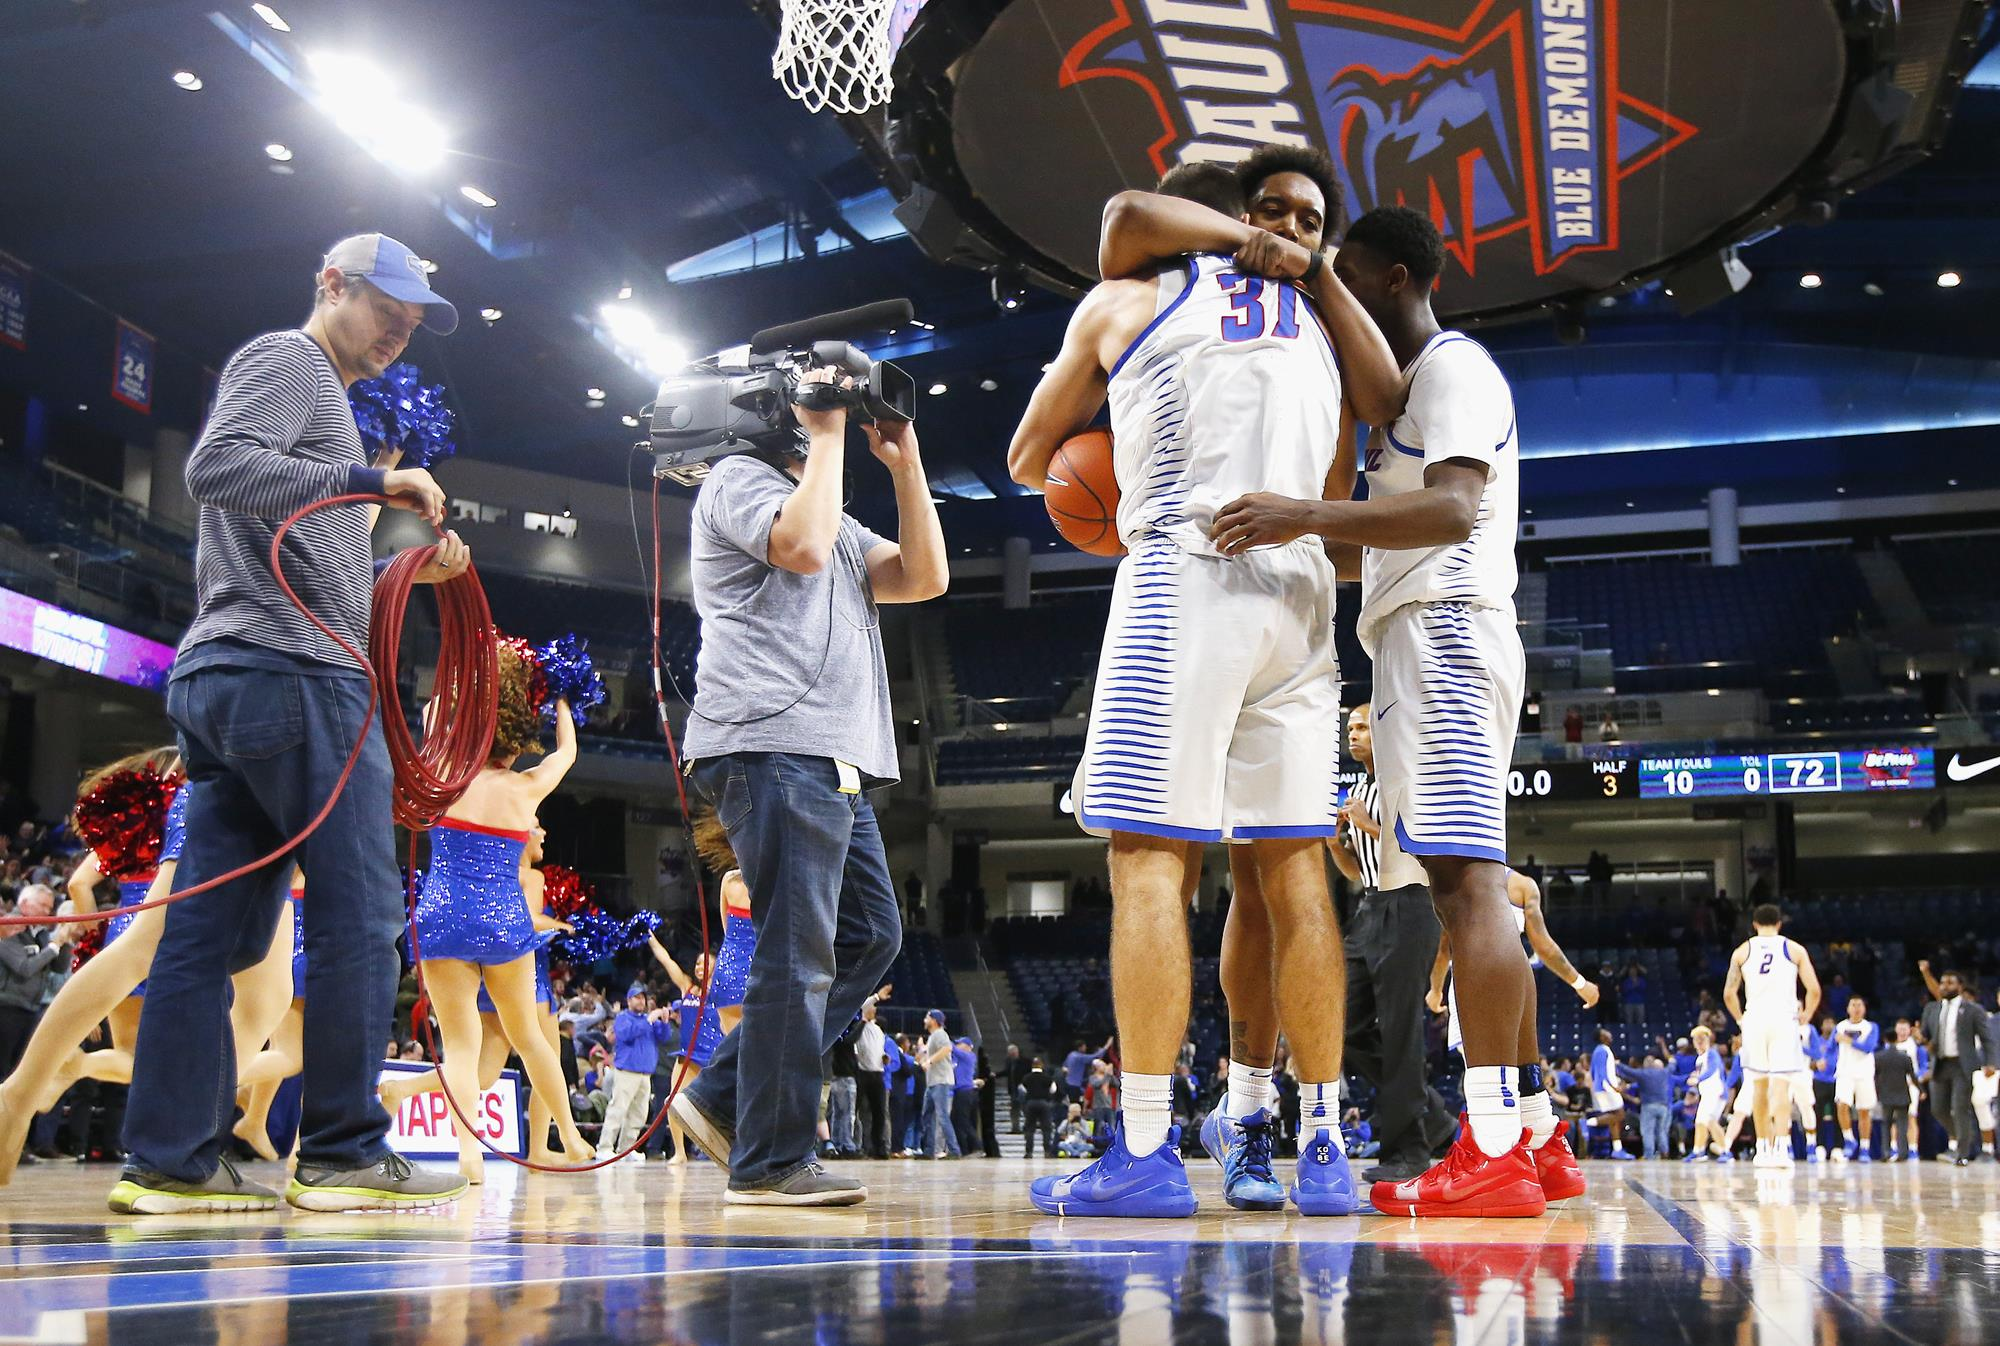 depaul basketball - photo #22